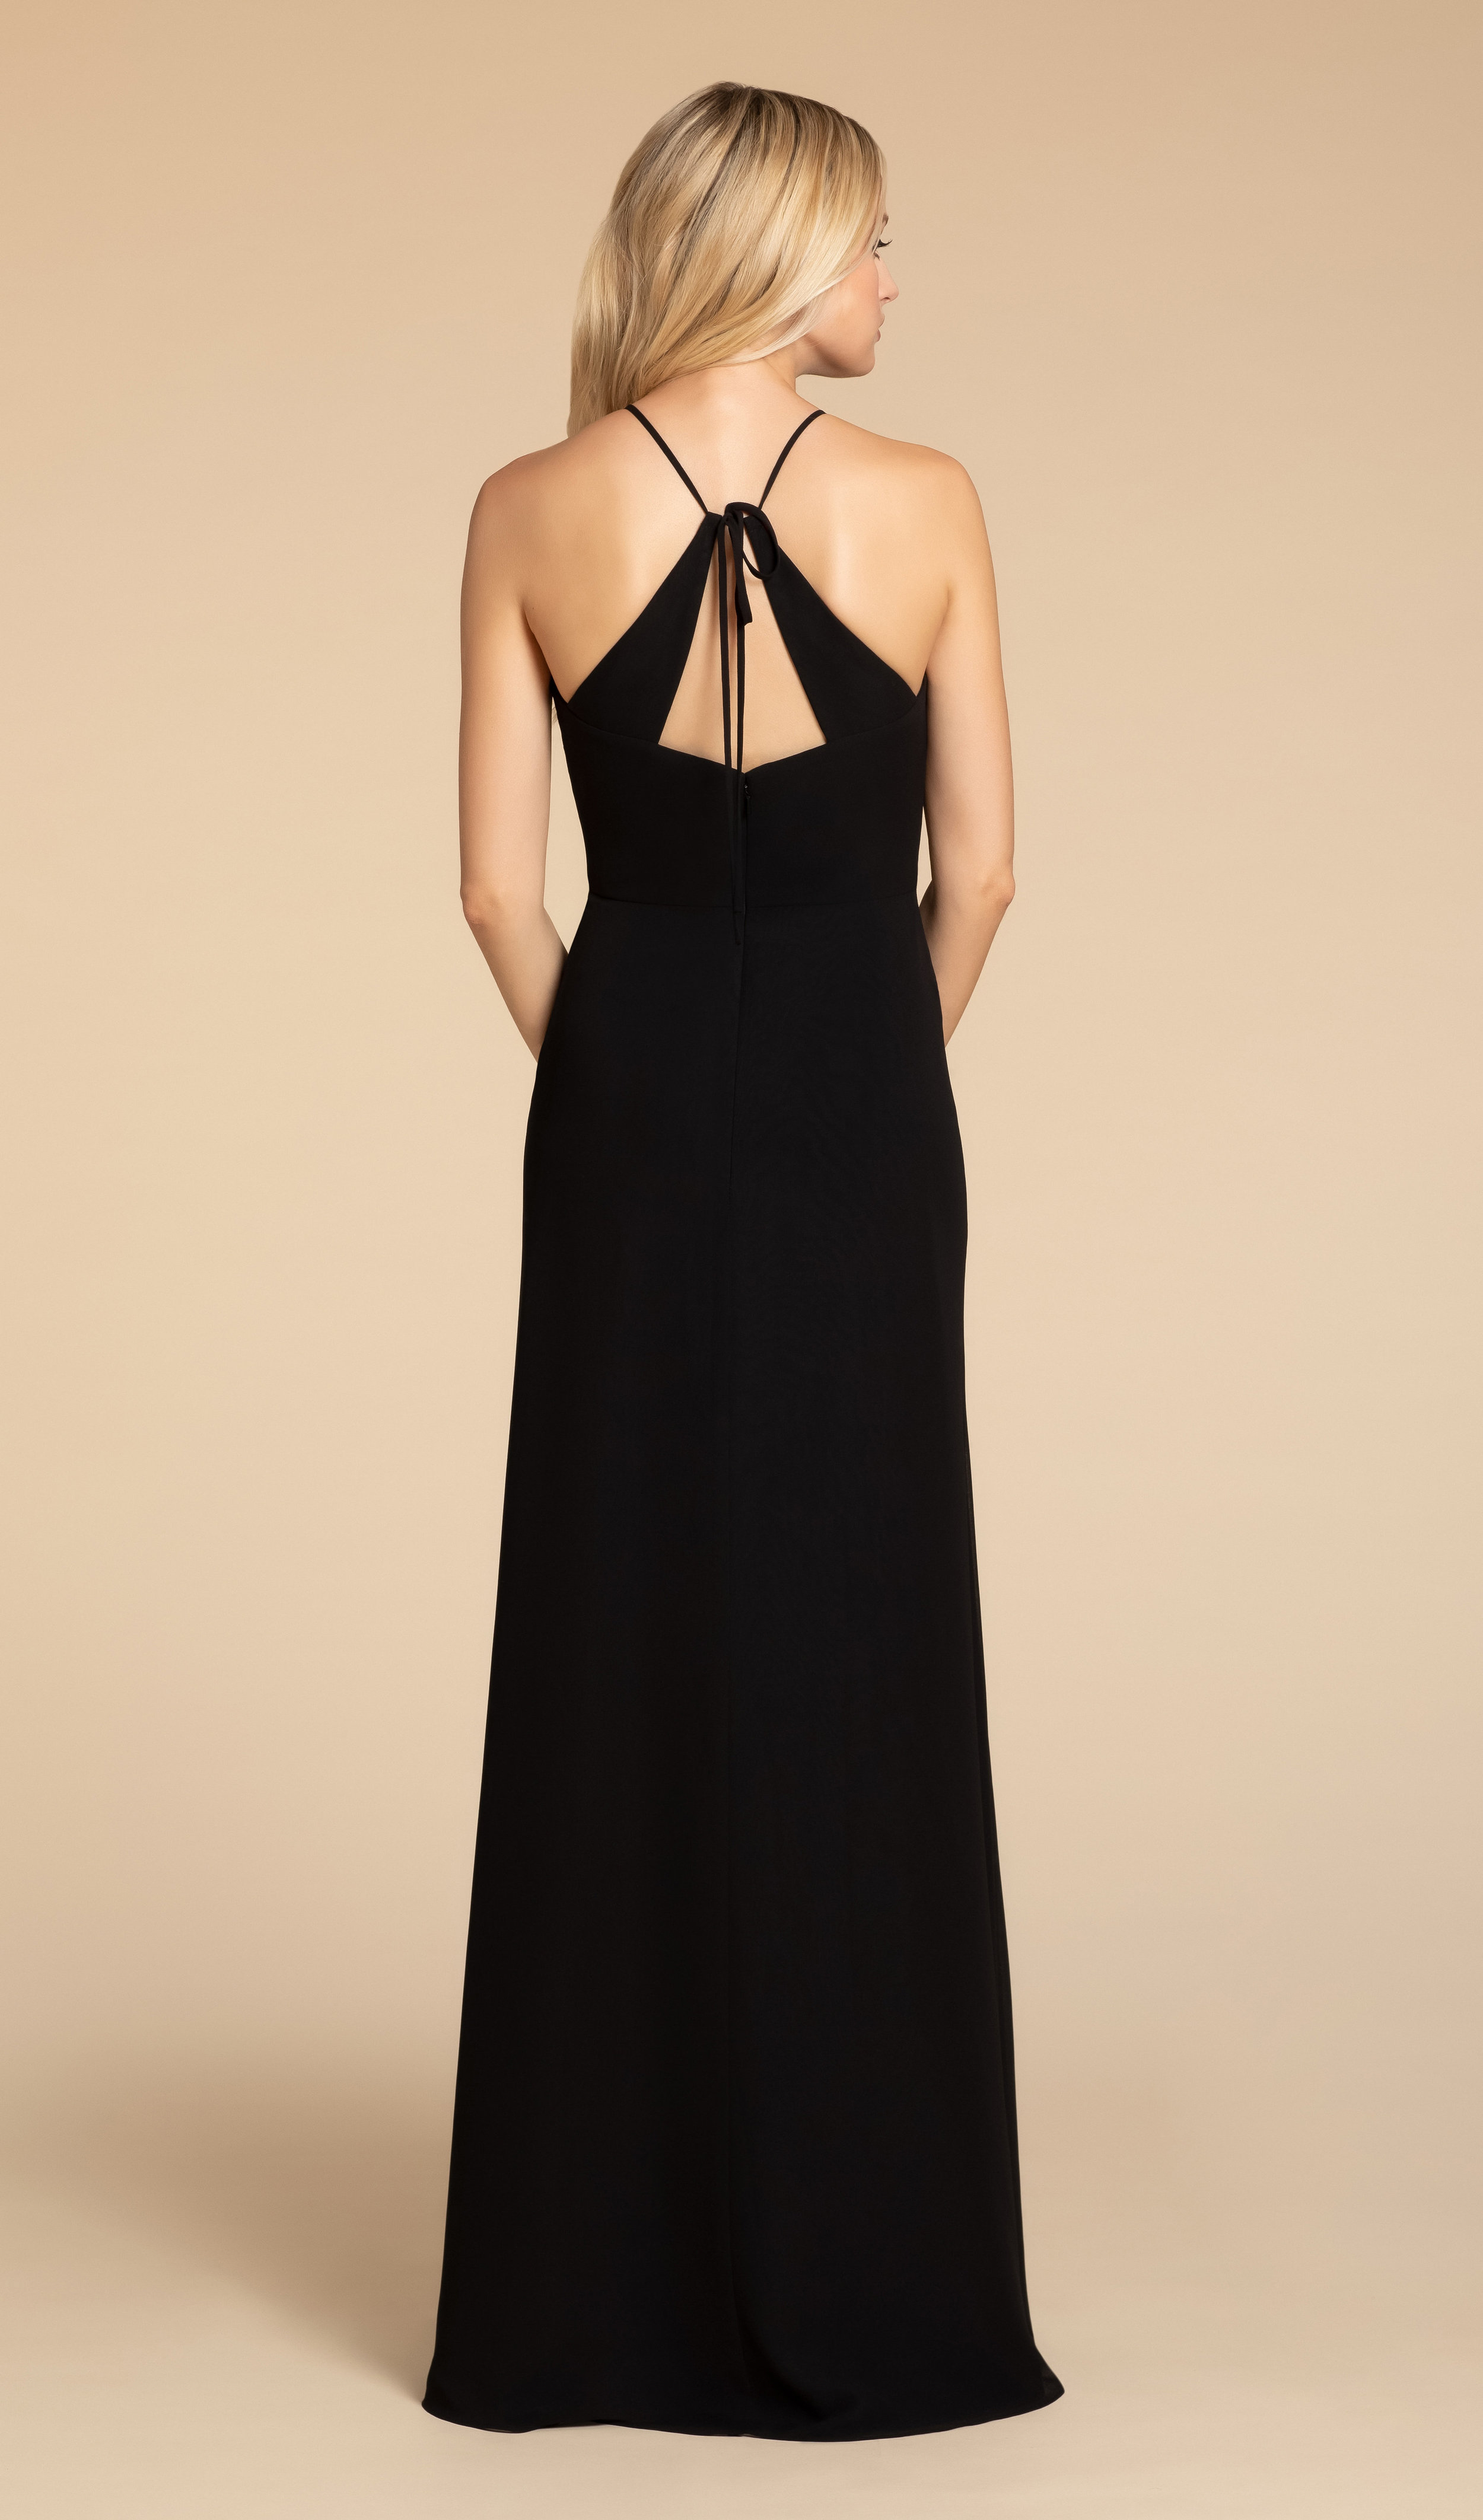 Tie back detail of Hayley Paige Occasions bridesmaid dress in black chiffon